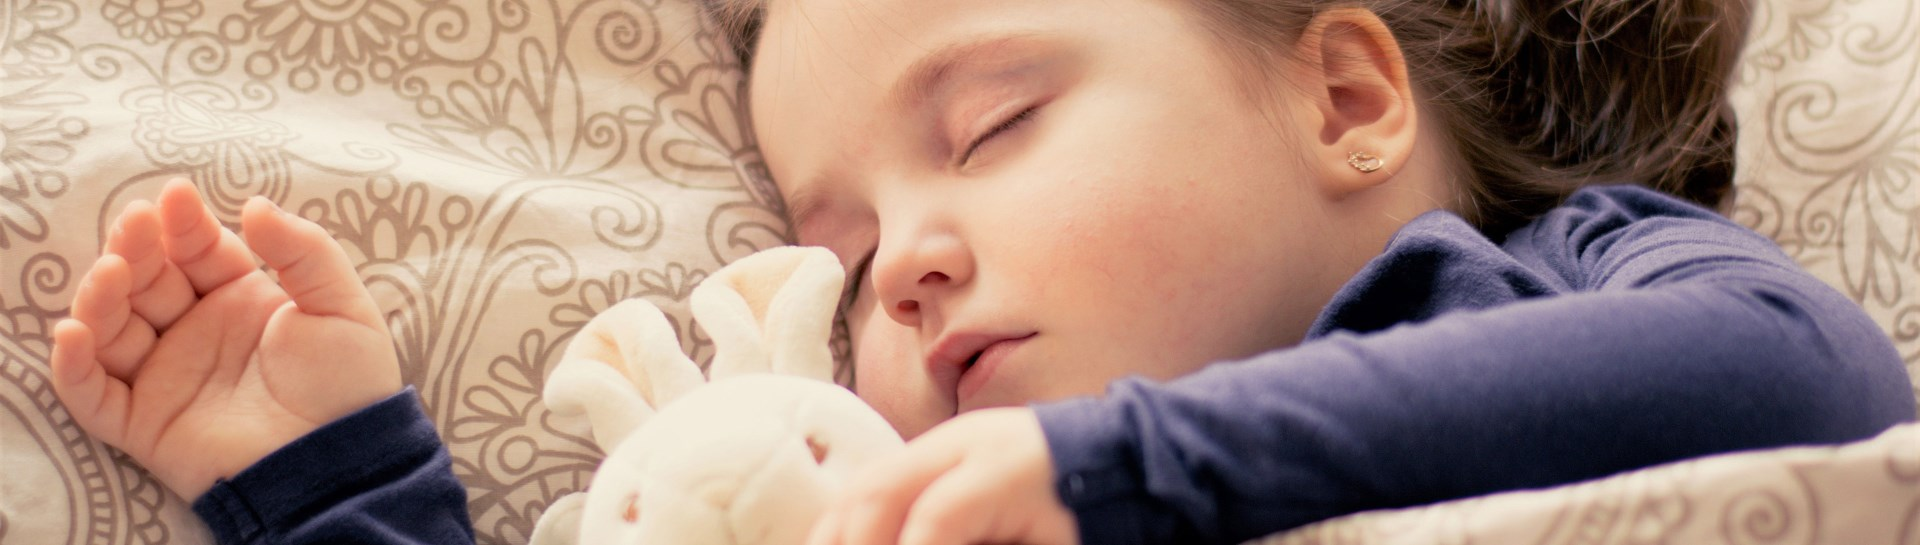 Young child snuggling with stuffed bunny while sleeping